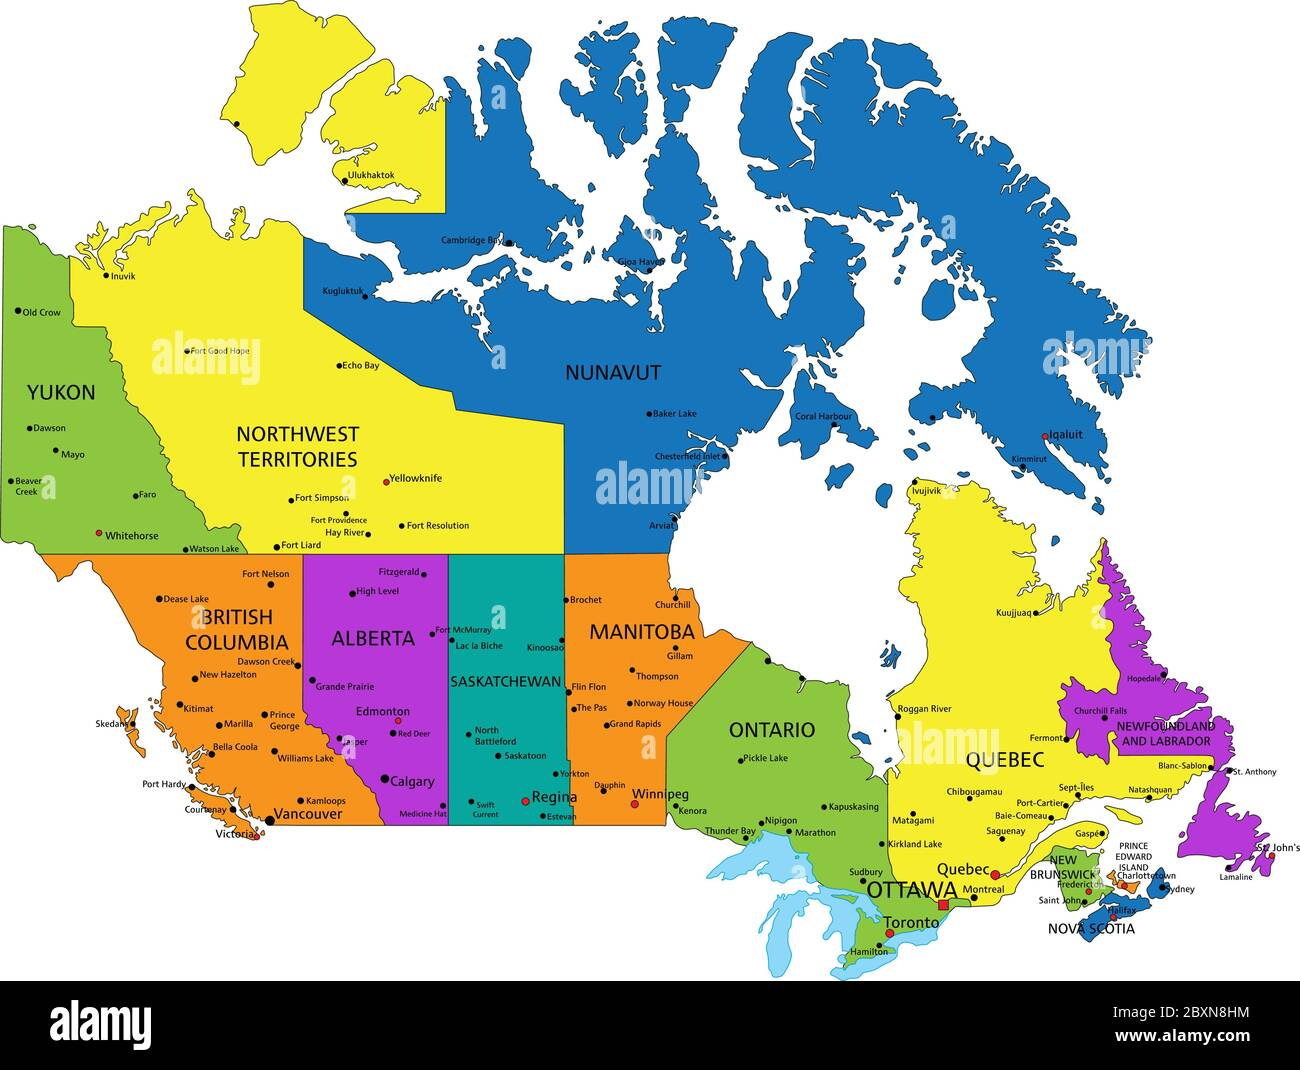 Labled Map Of Canada Canada Political Map High Resolution Stock Photography and Images